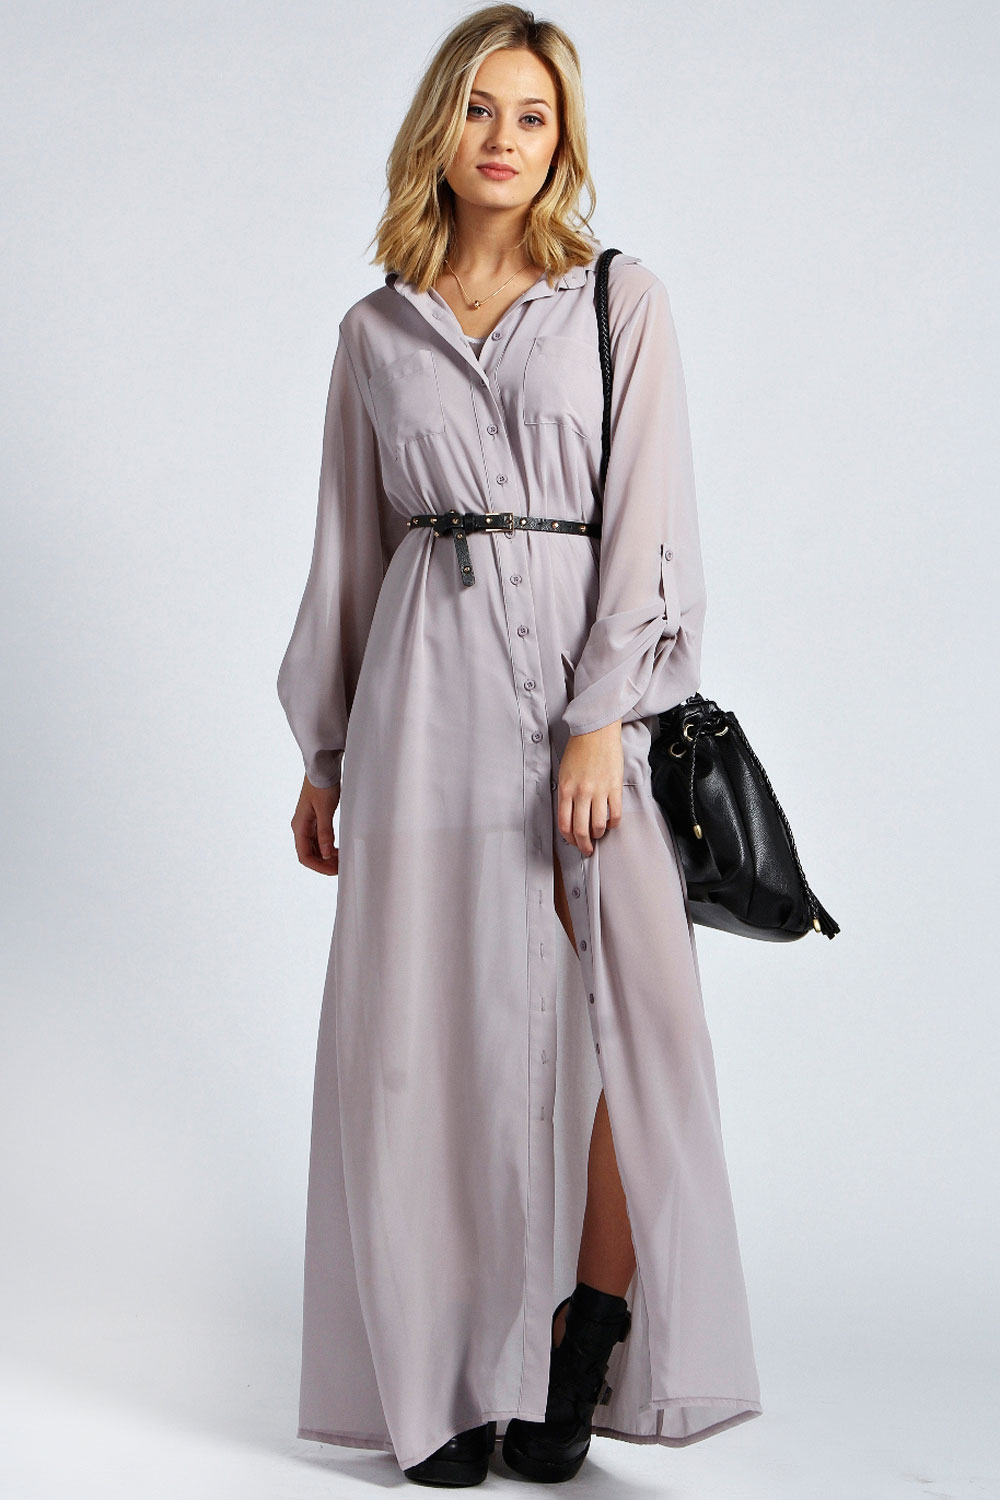 Boohoo Womens Ladies Una Long Sleeve Maxi Chiffon Shirt Dress | eBay: www.ebay.co.uk/itm/Boohoo-Womens-Ladies-Una-Long-Sleeve-Maxi...